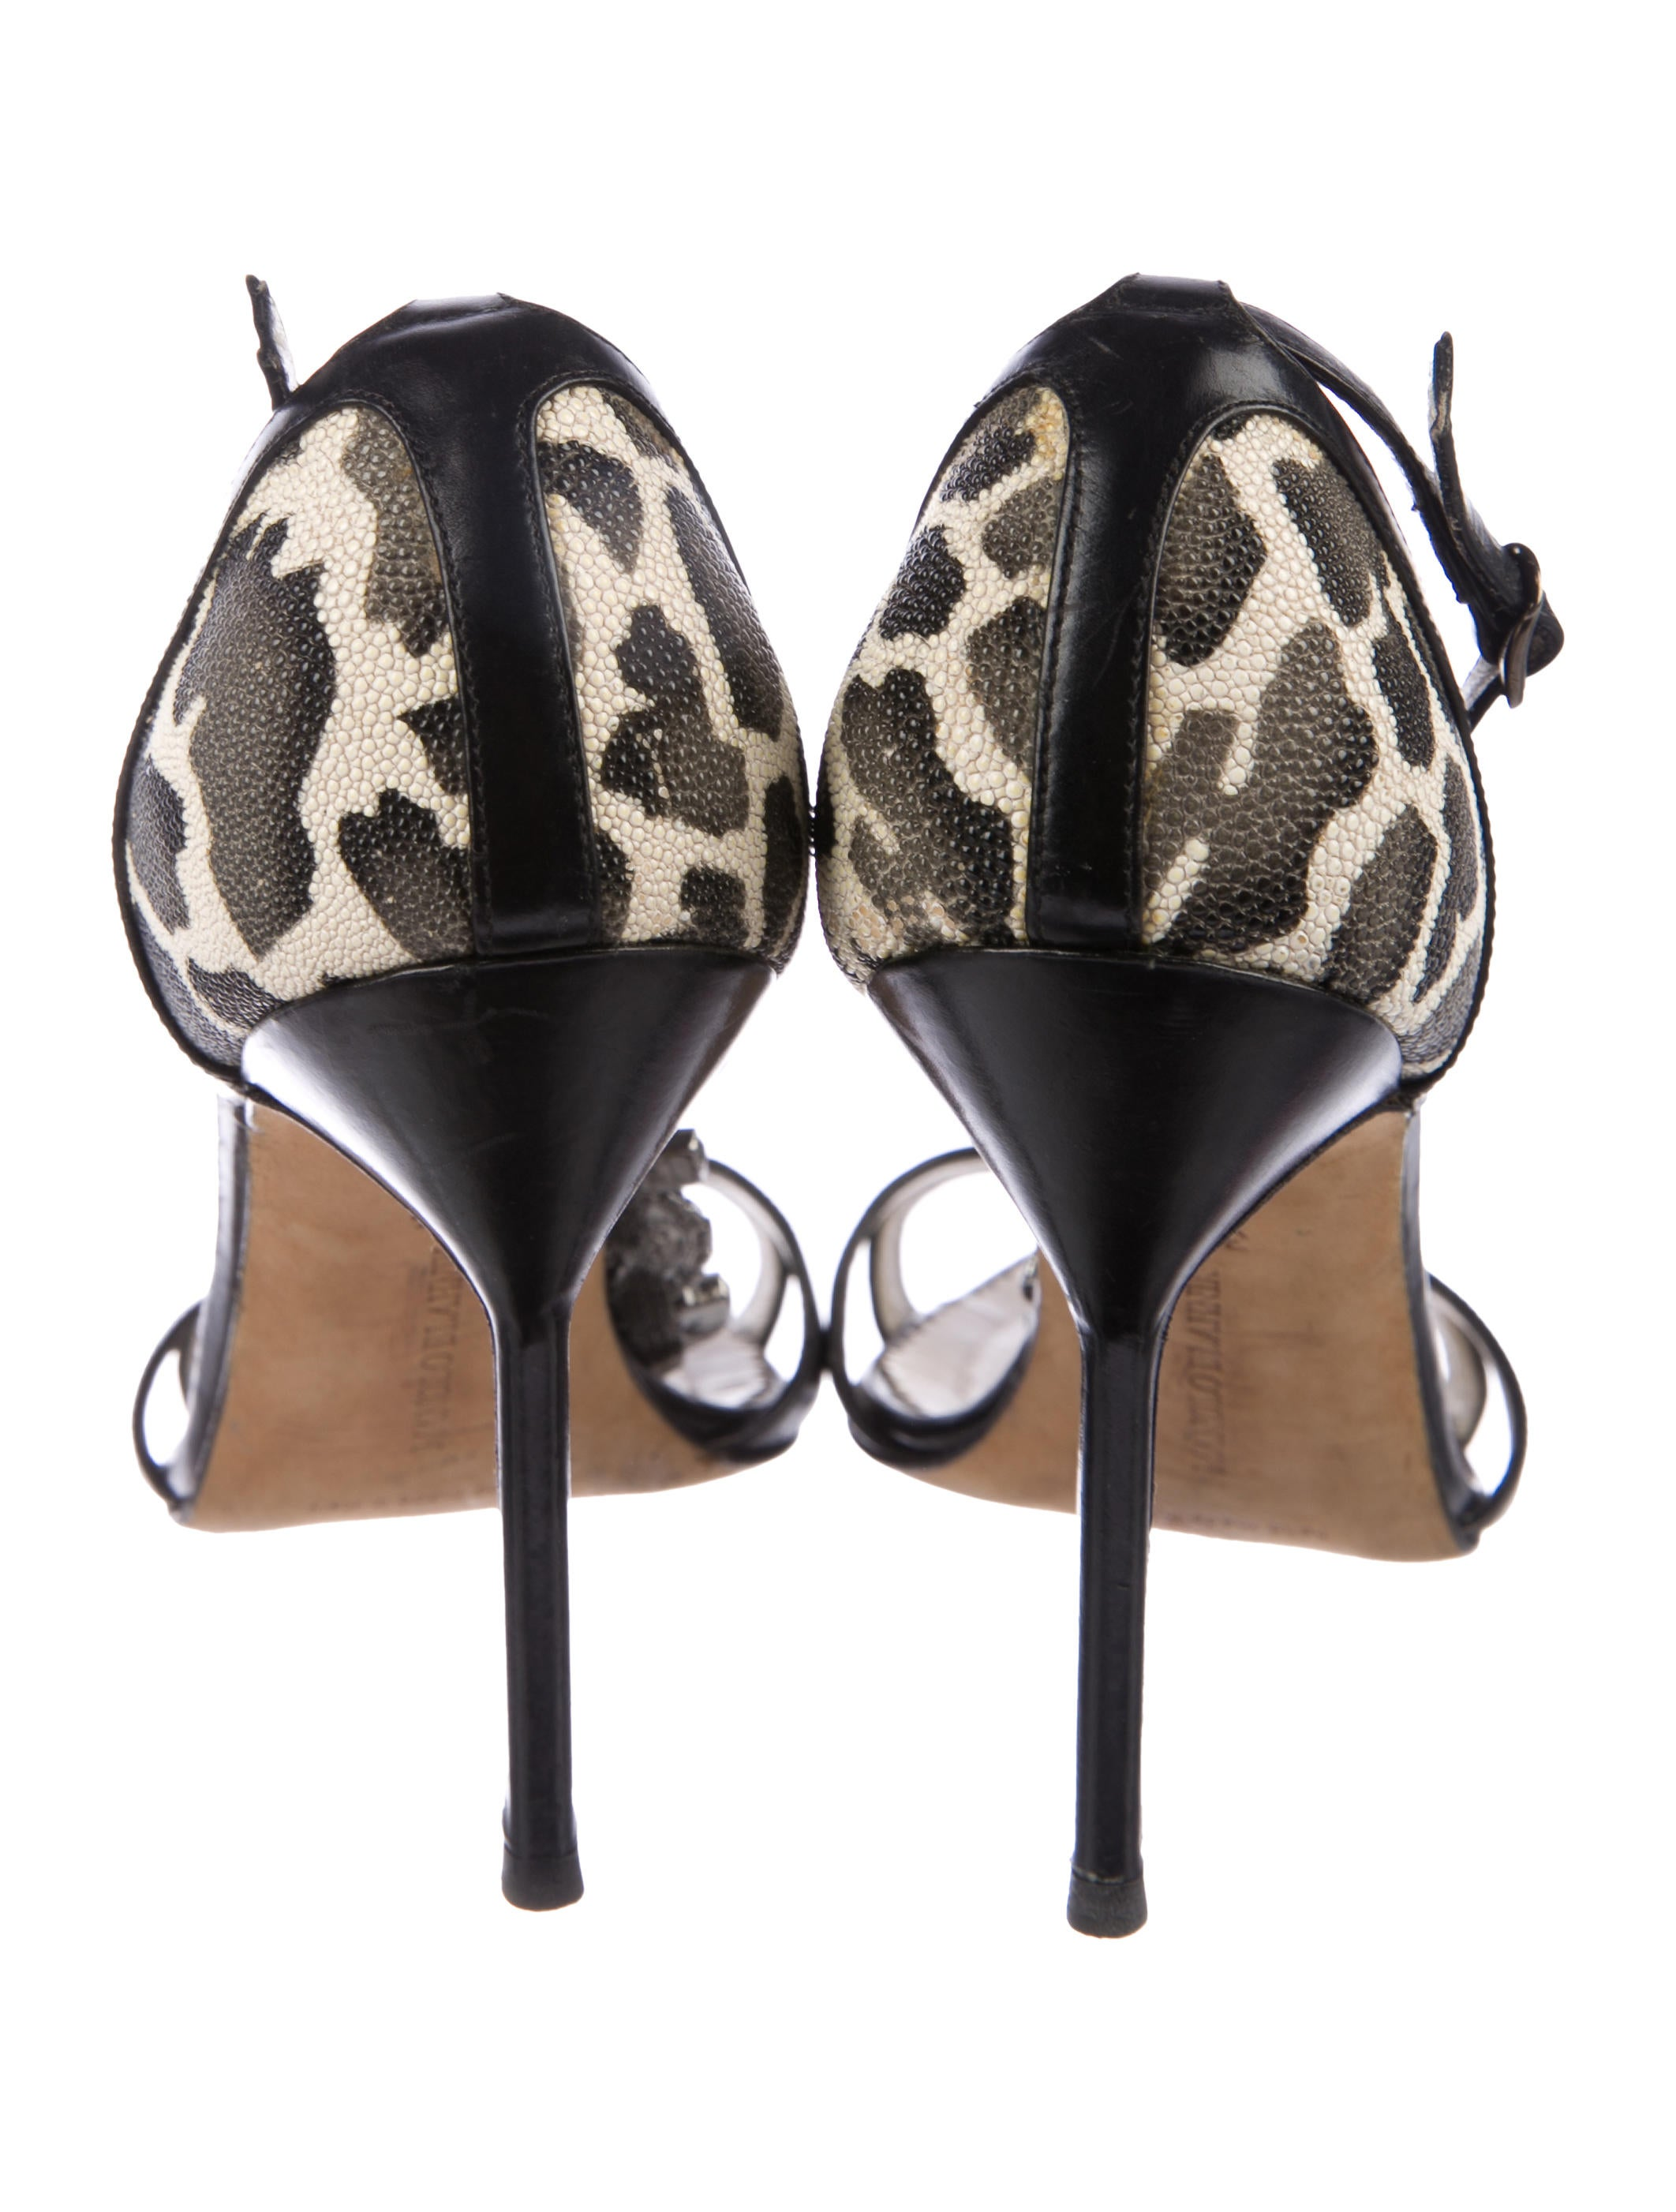 Manolo Blahnik Stingray-Trimmed Embellished Sandals 2014 unisex cheap online cheap pay with paypal 2HN0DANvDQ